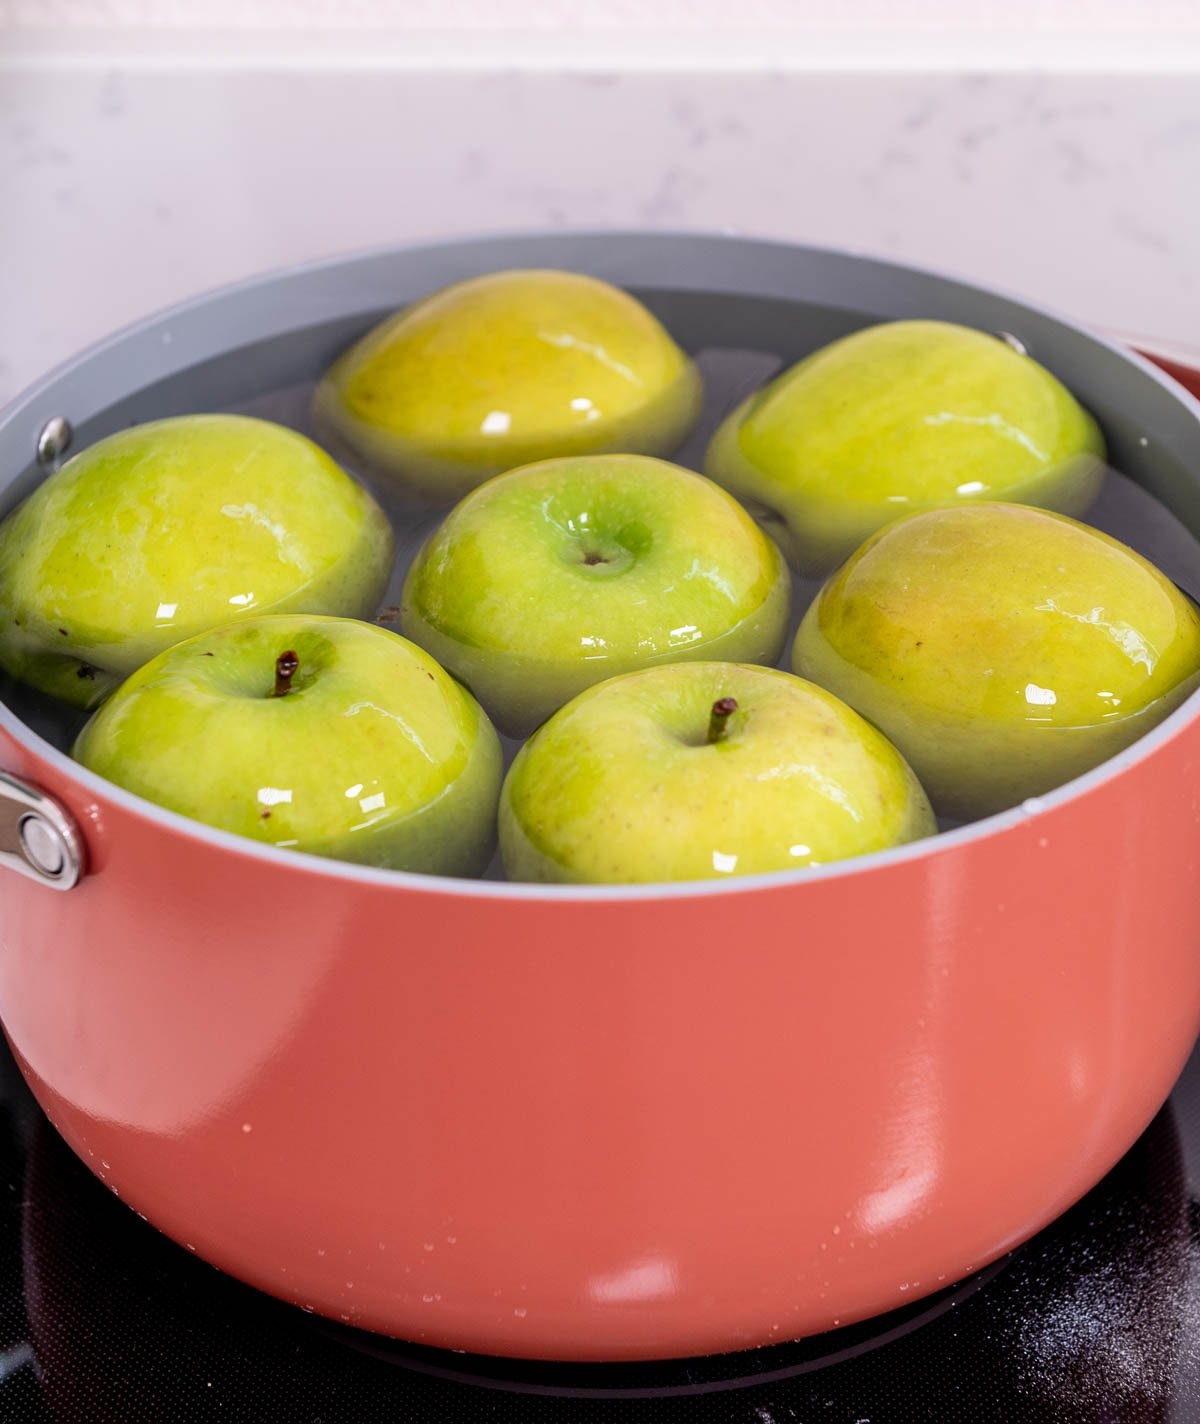 granny smith apples in Pot of hot water